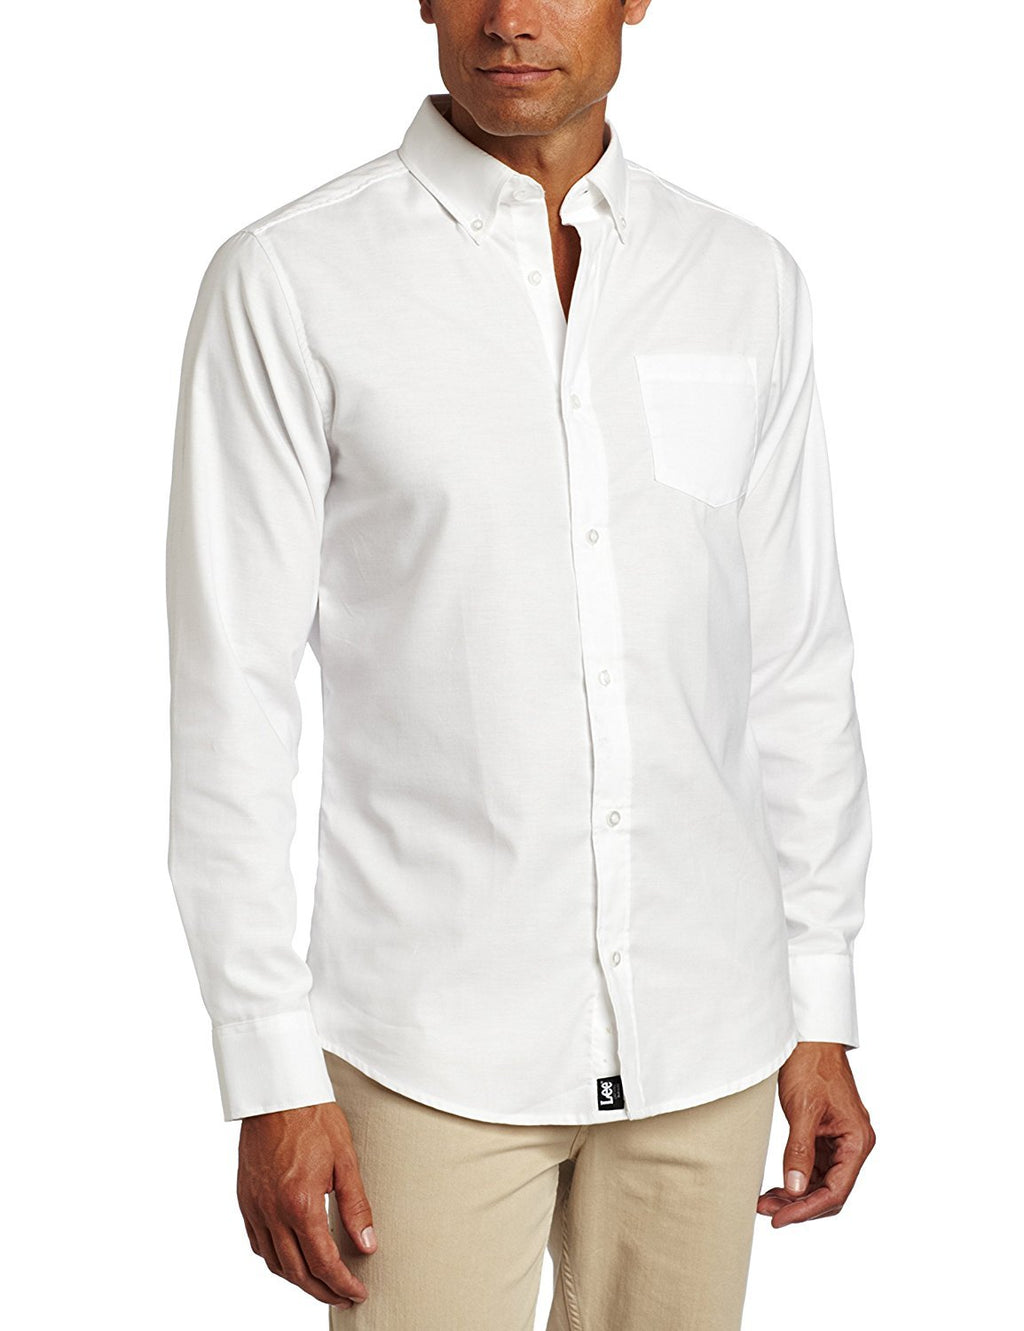 lee-uniforms-men's-long-sleeve-oxford-shirt